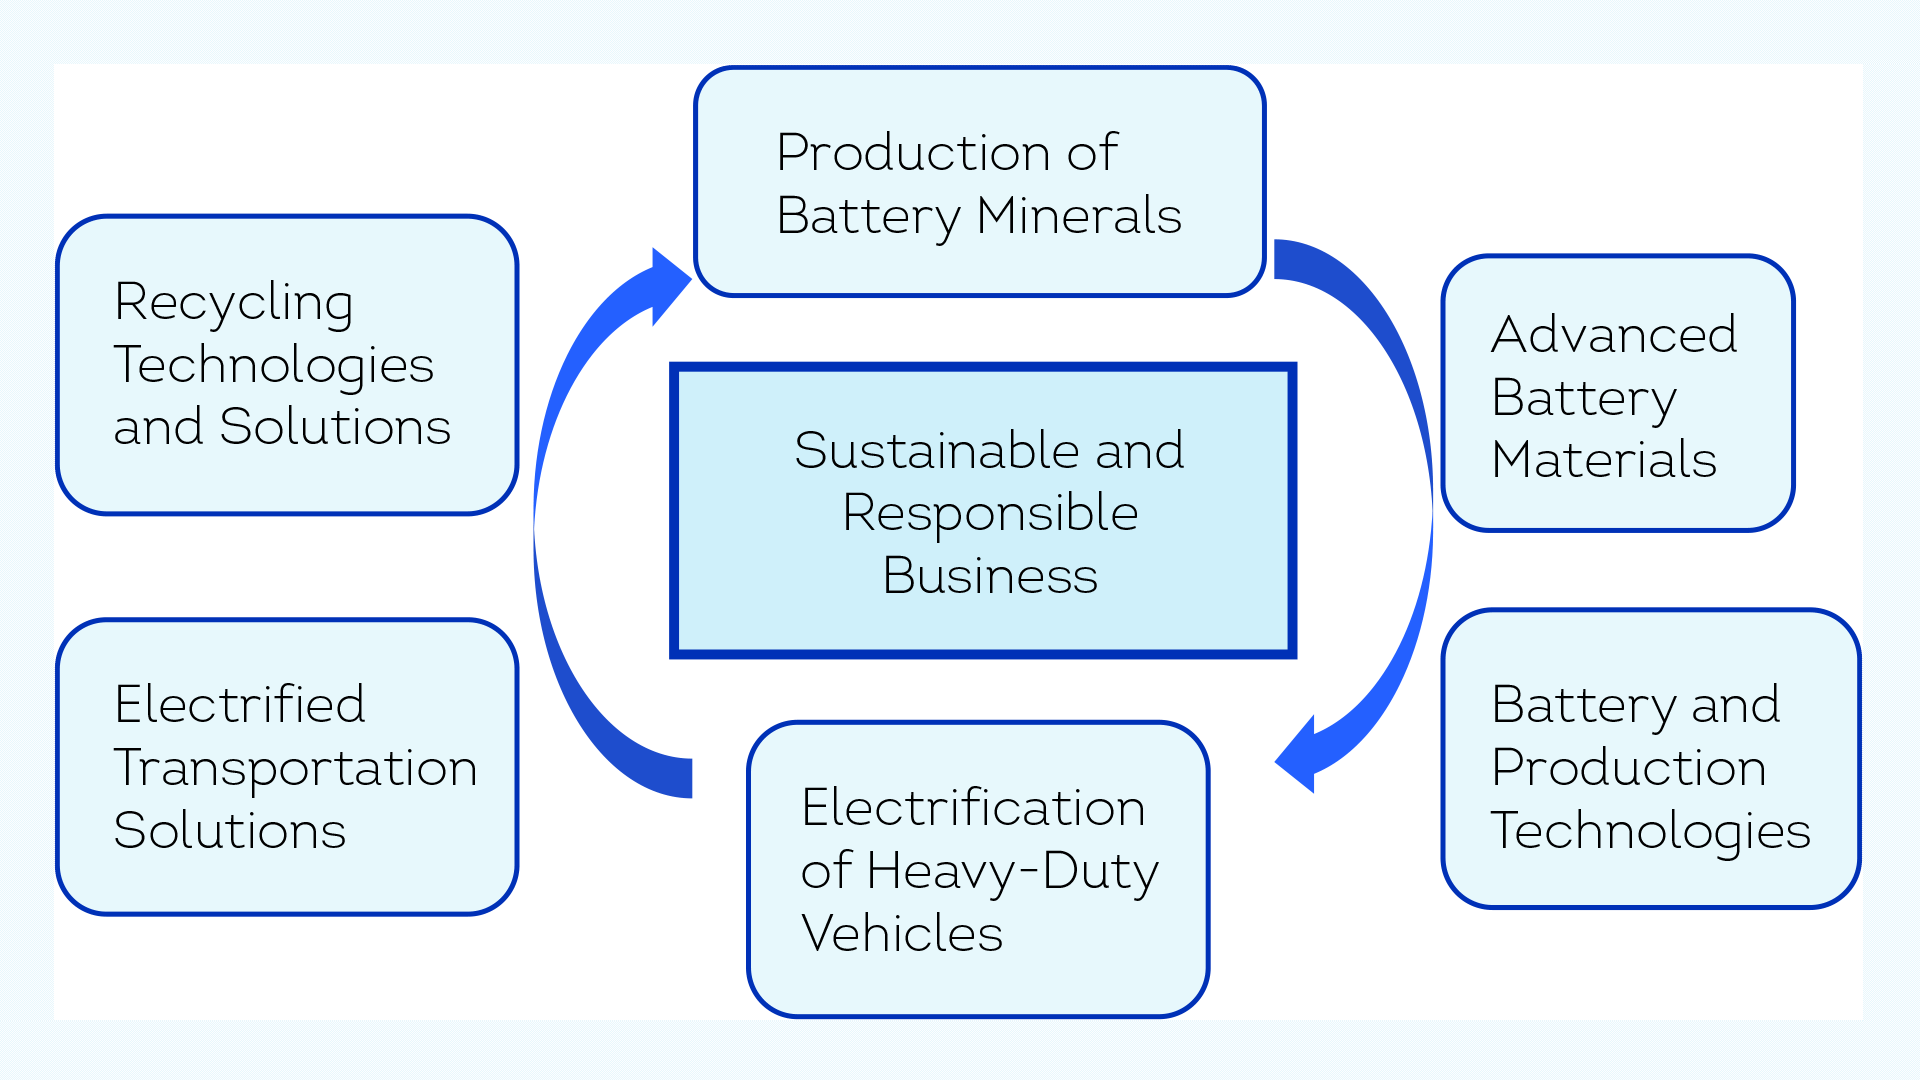 A graph depicting the focus areas in the Finnish battery ecosystem to create sustainable and responsible business: It starts from the Production of Battery Minerals, continues to Advanced Battery Materials, Battery and Production Technologies, Electrification of Heavy-Duty Vehicles, and Electrified Transportation Solutions, and reaches Recycling Technologies and Solutions, finally circulating back to Production of Battery Minerals.